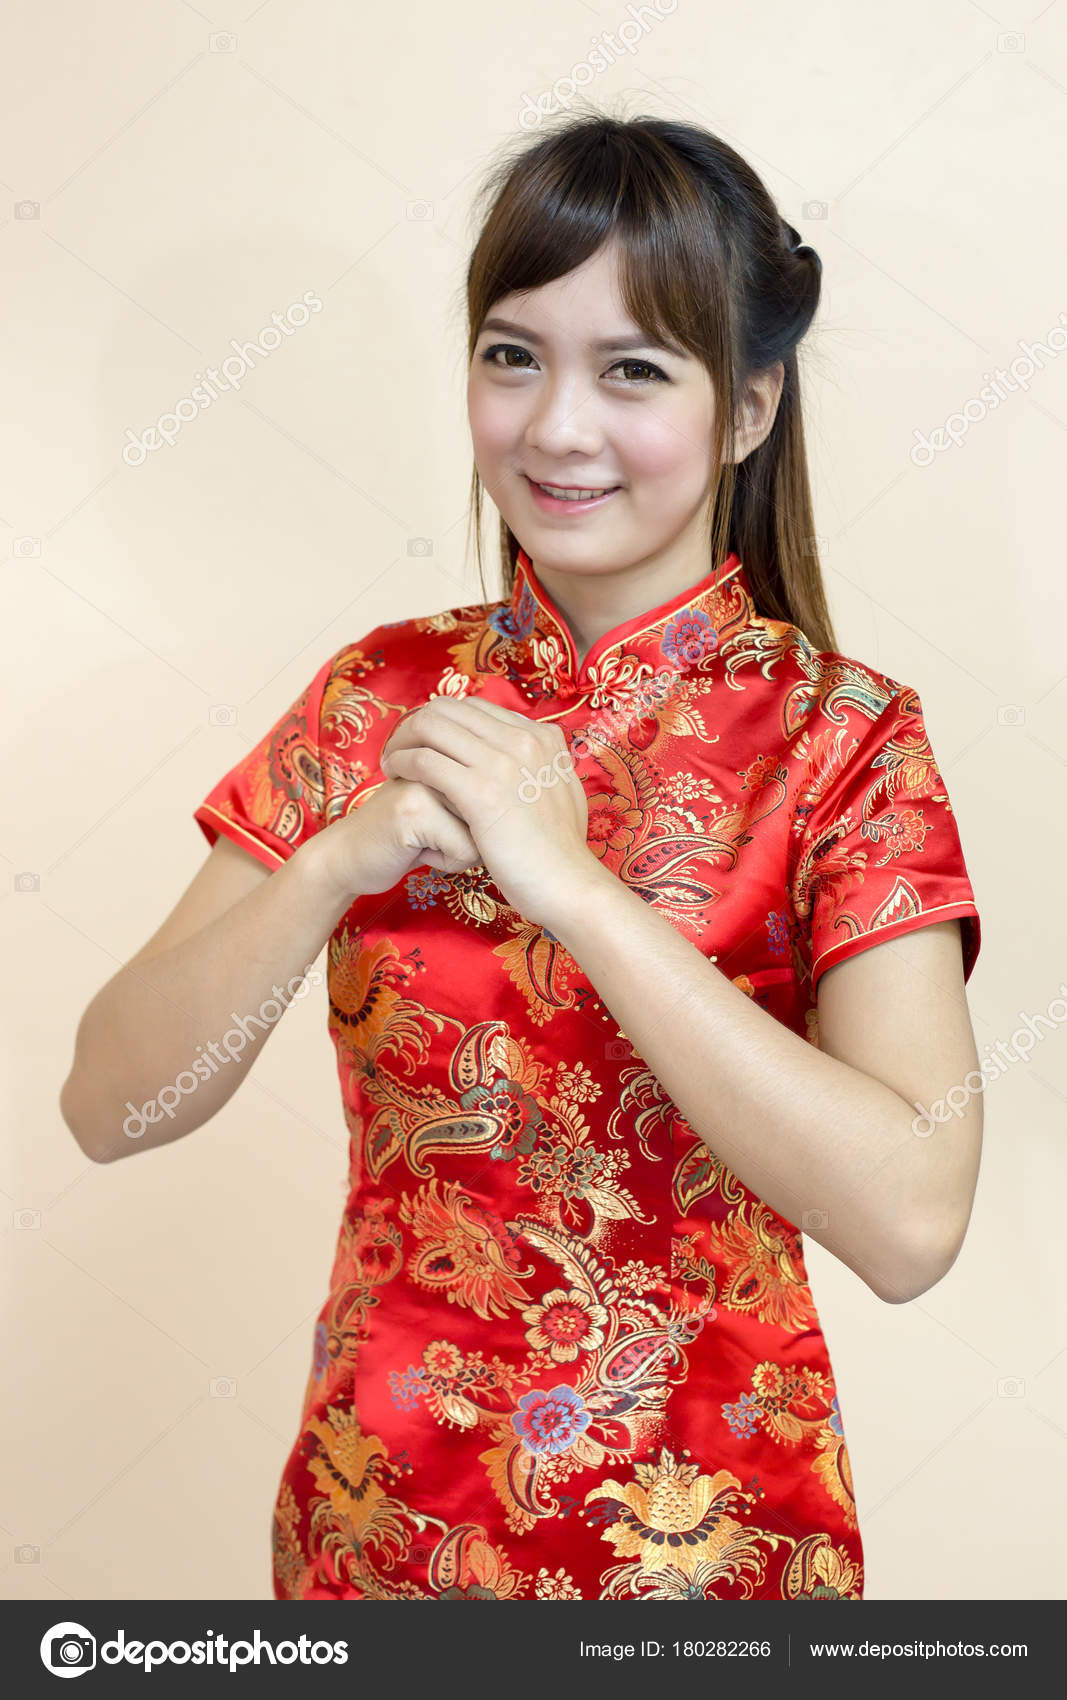 Asian woman greeting traditional chinese cheongsam hand lift welcome asian woman greeting in traditional chinese or cheongsam with hand lift welcome expression and lucky in chinese new year celebration in red golden style m4hsunfo